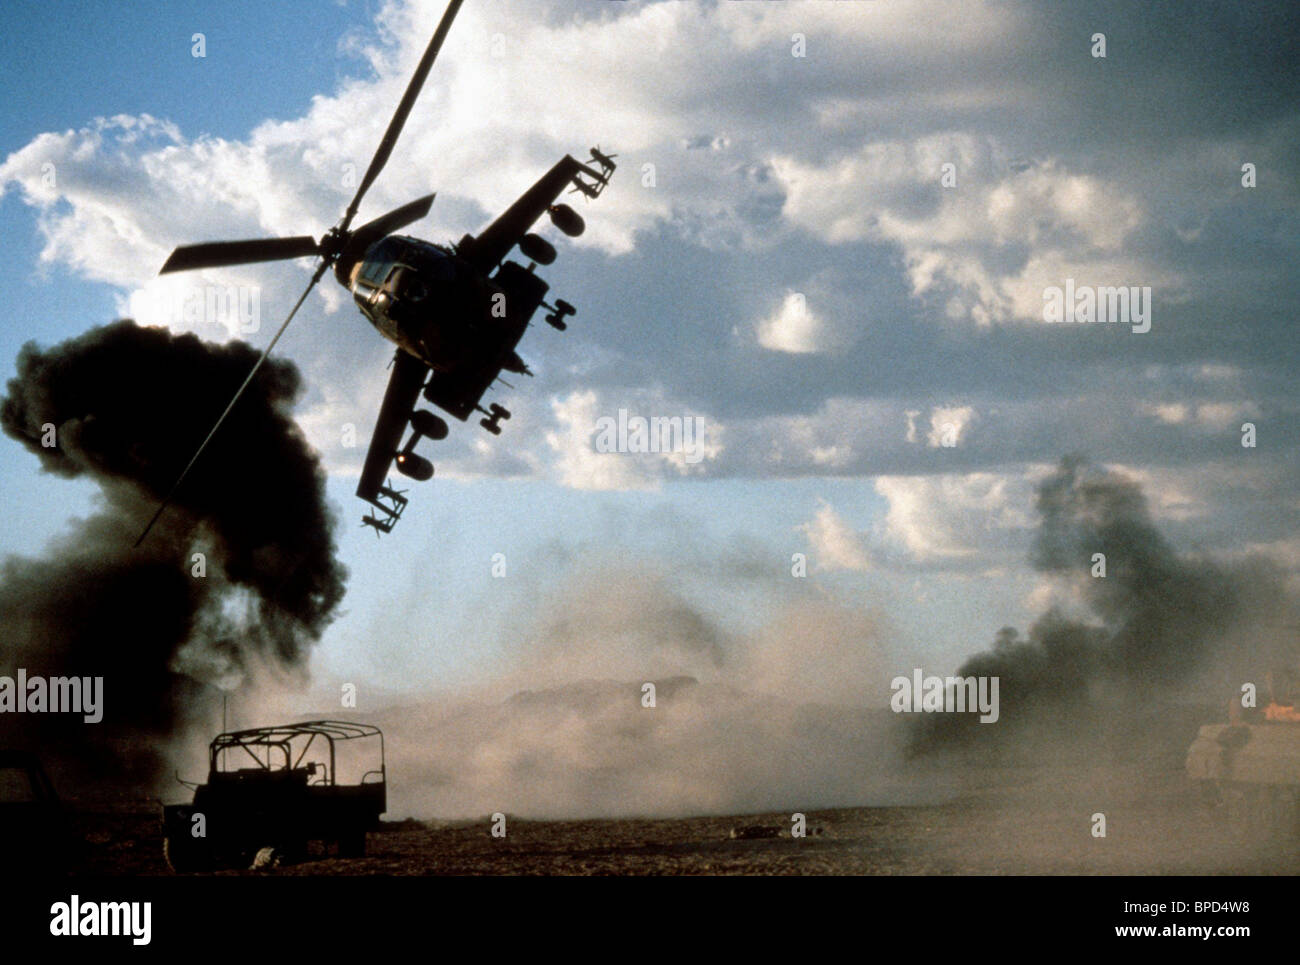 HELICOPTER ATTACK AFGHAN BASE RAMBO III (1988) - Stock Image